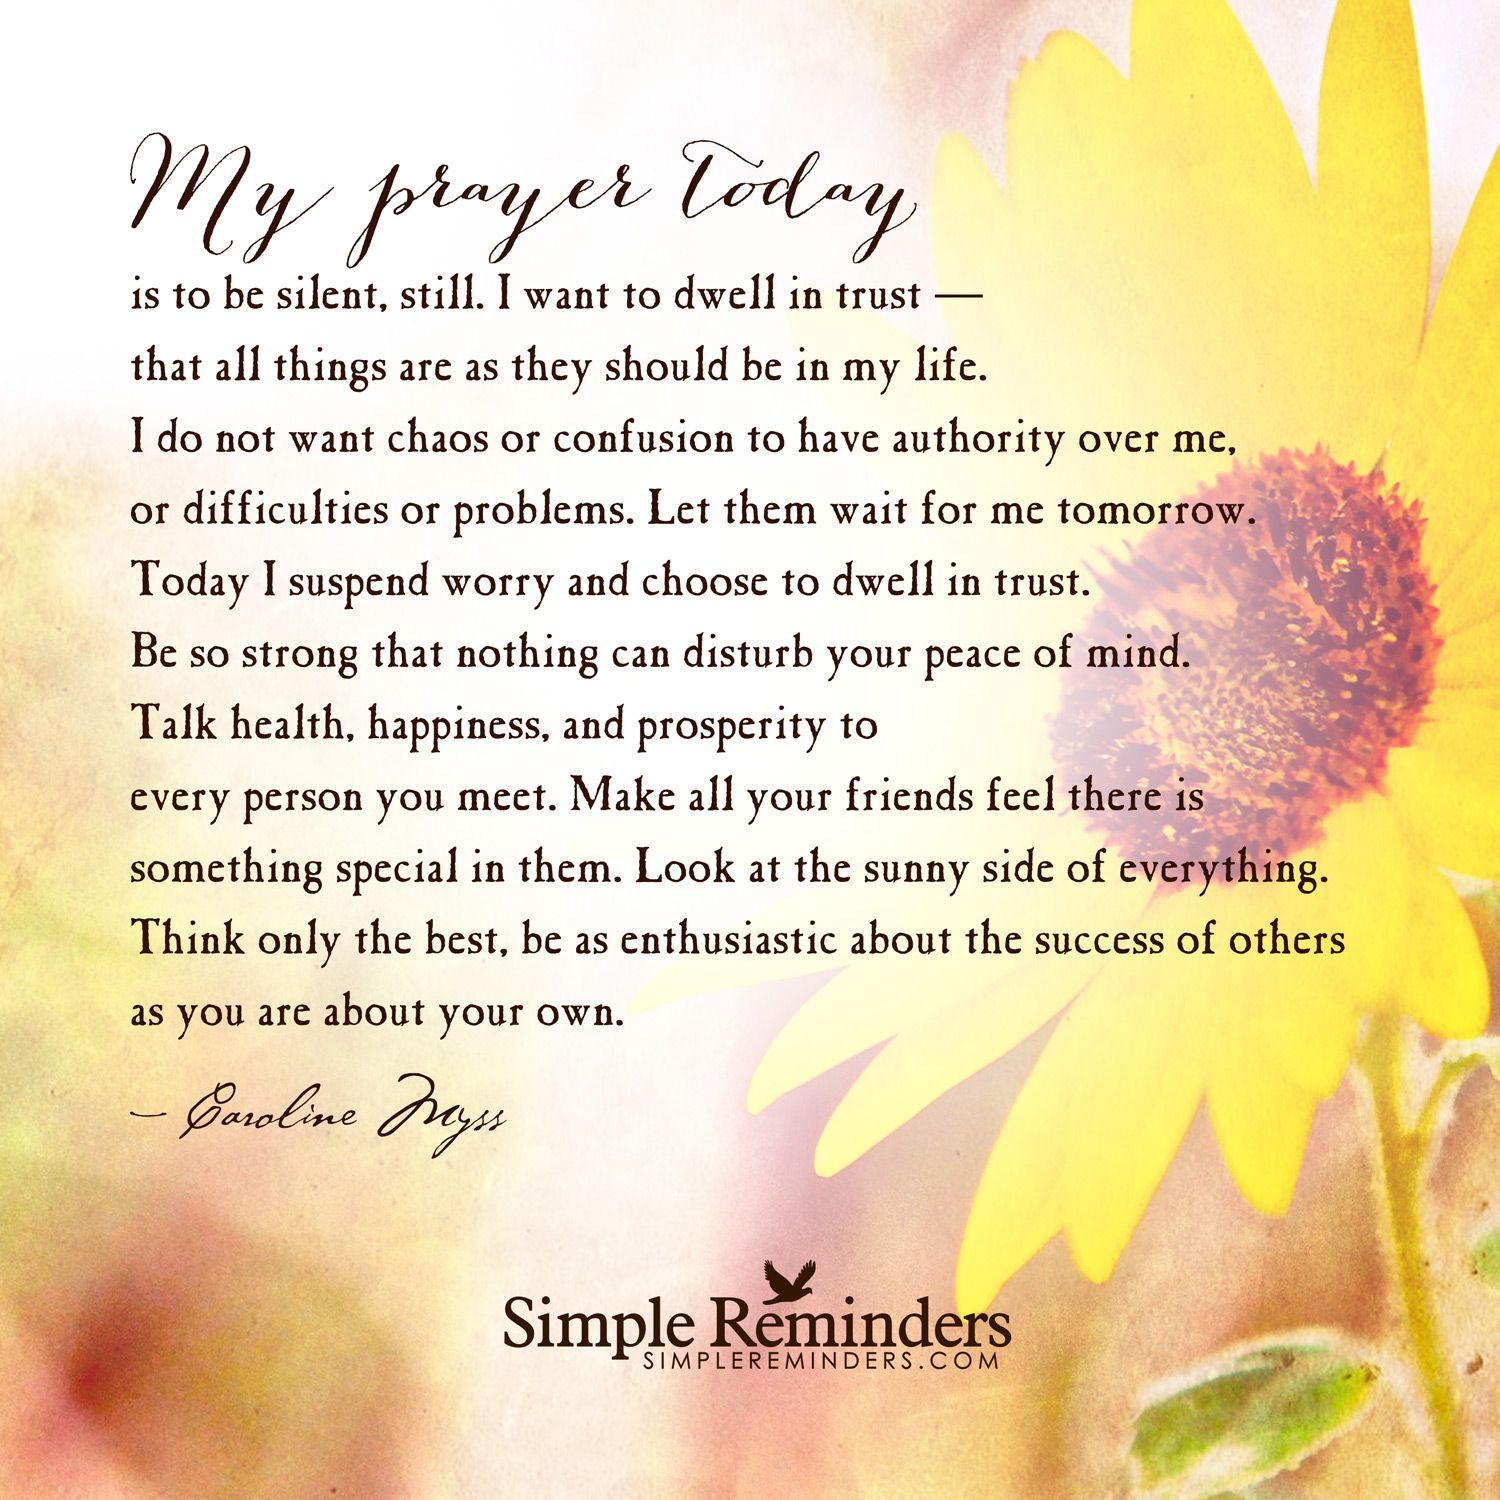 Todays Prayer Quotes My Prayer Today Is To Be Silent My Prayer Today Is To Be Silent